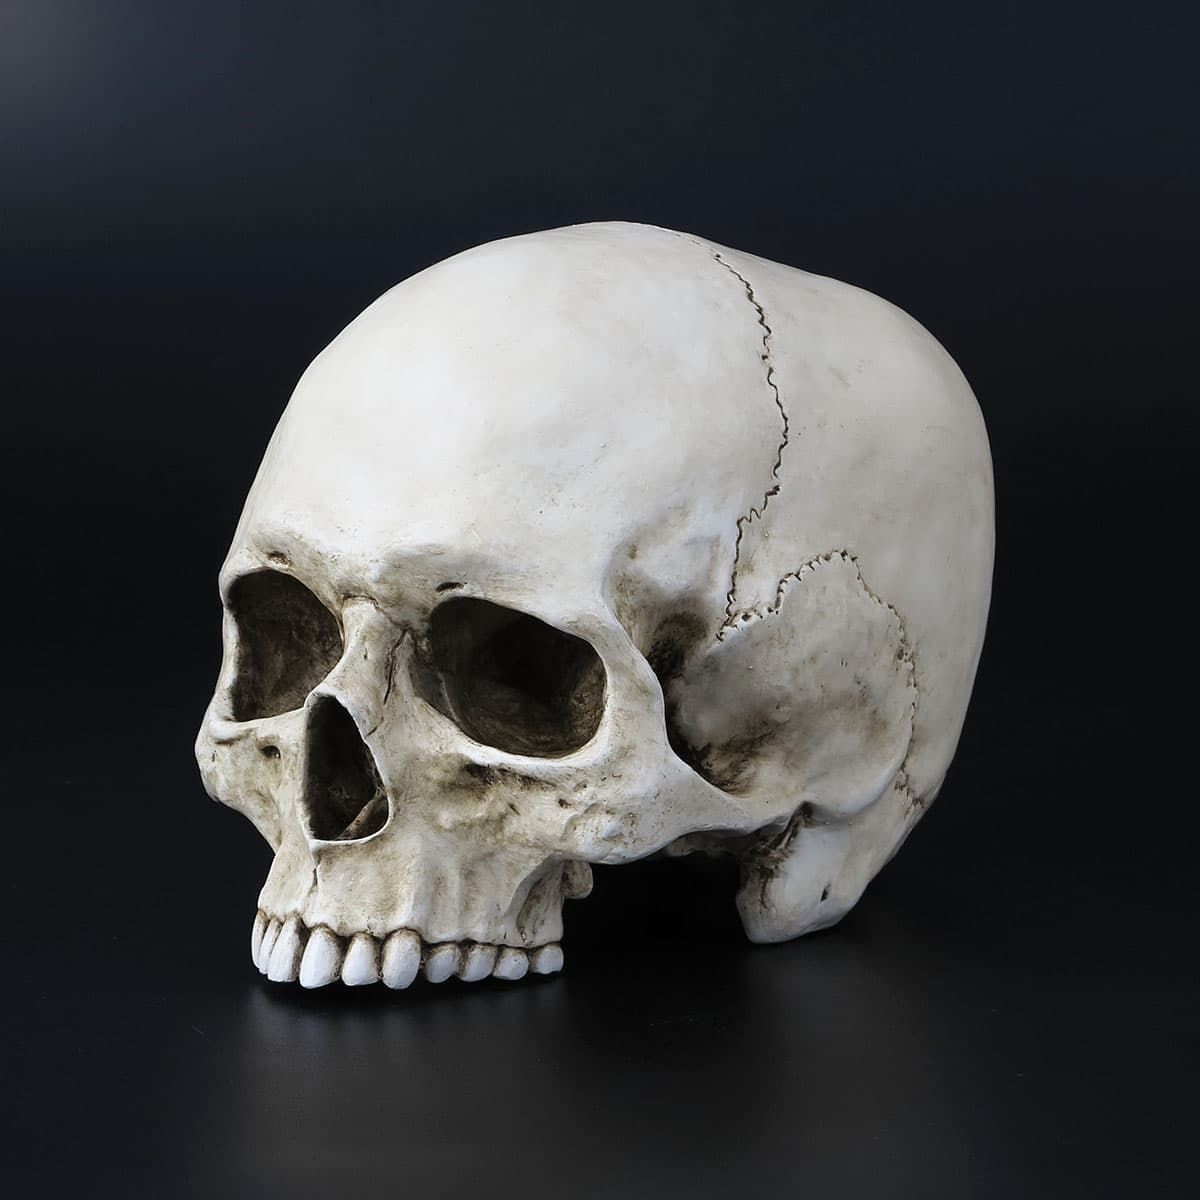 Picture of Life Size Jawless Human Skull Sculpture